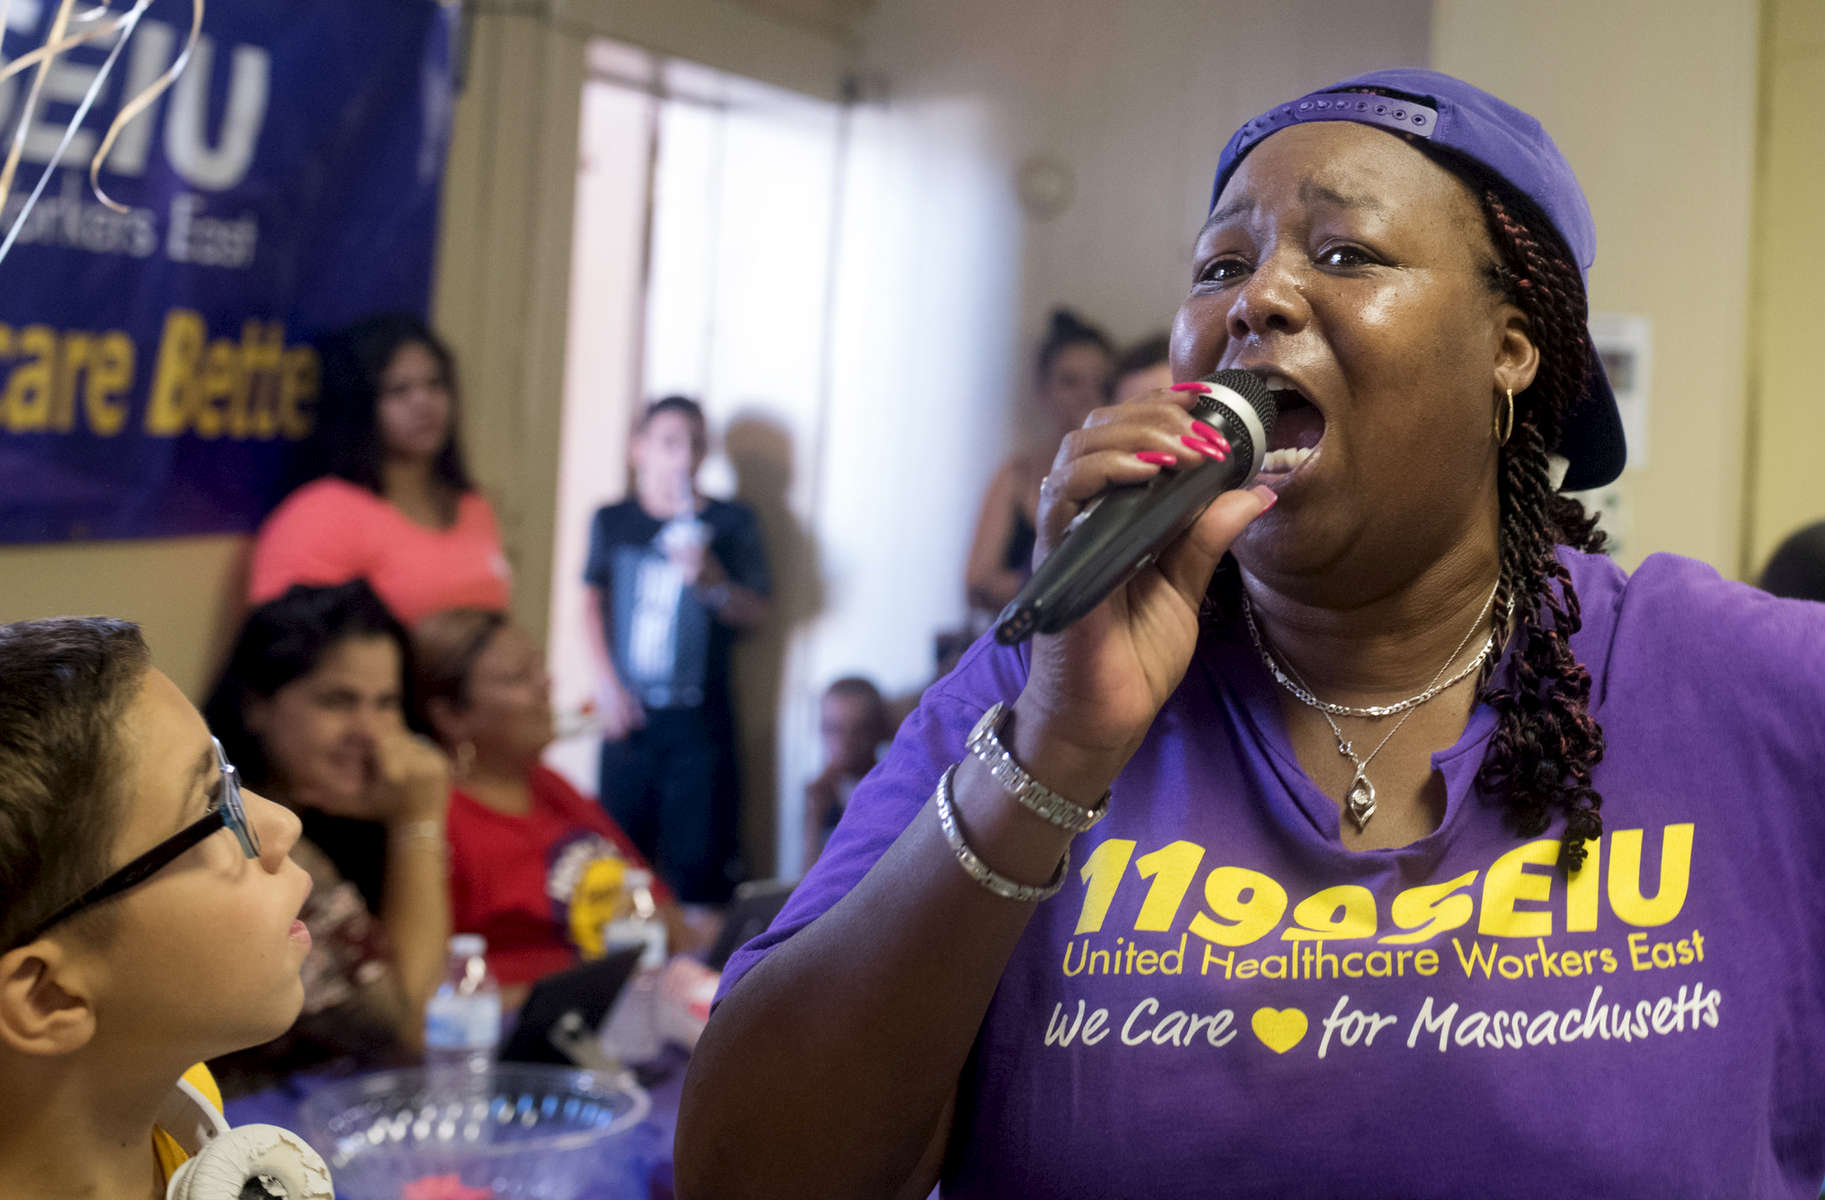 1199 SEIU Healthcare Workers Rising Victory Cookout in Springfield at Mount Calvary Baptist Church, Saturday, August 4, 2018.